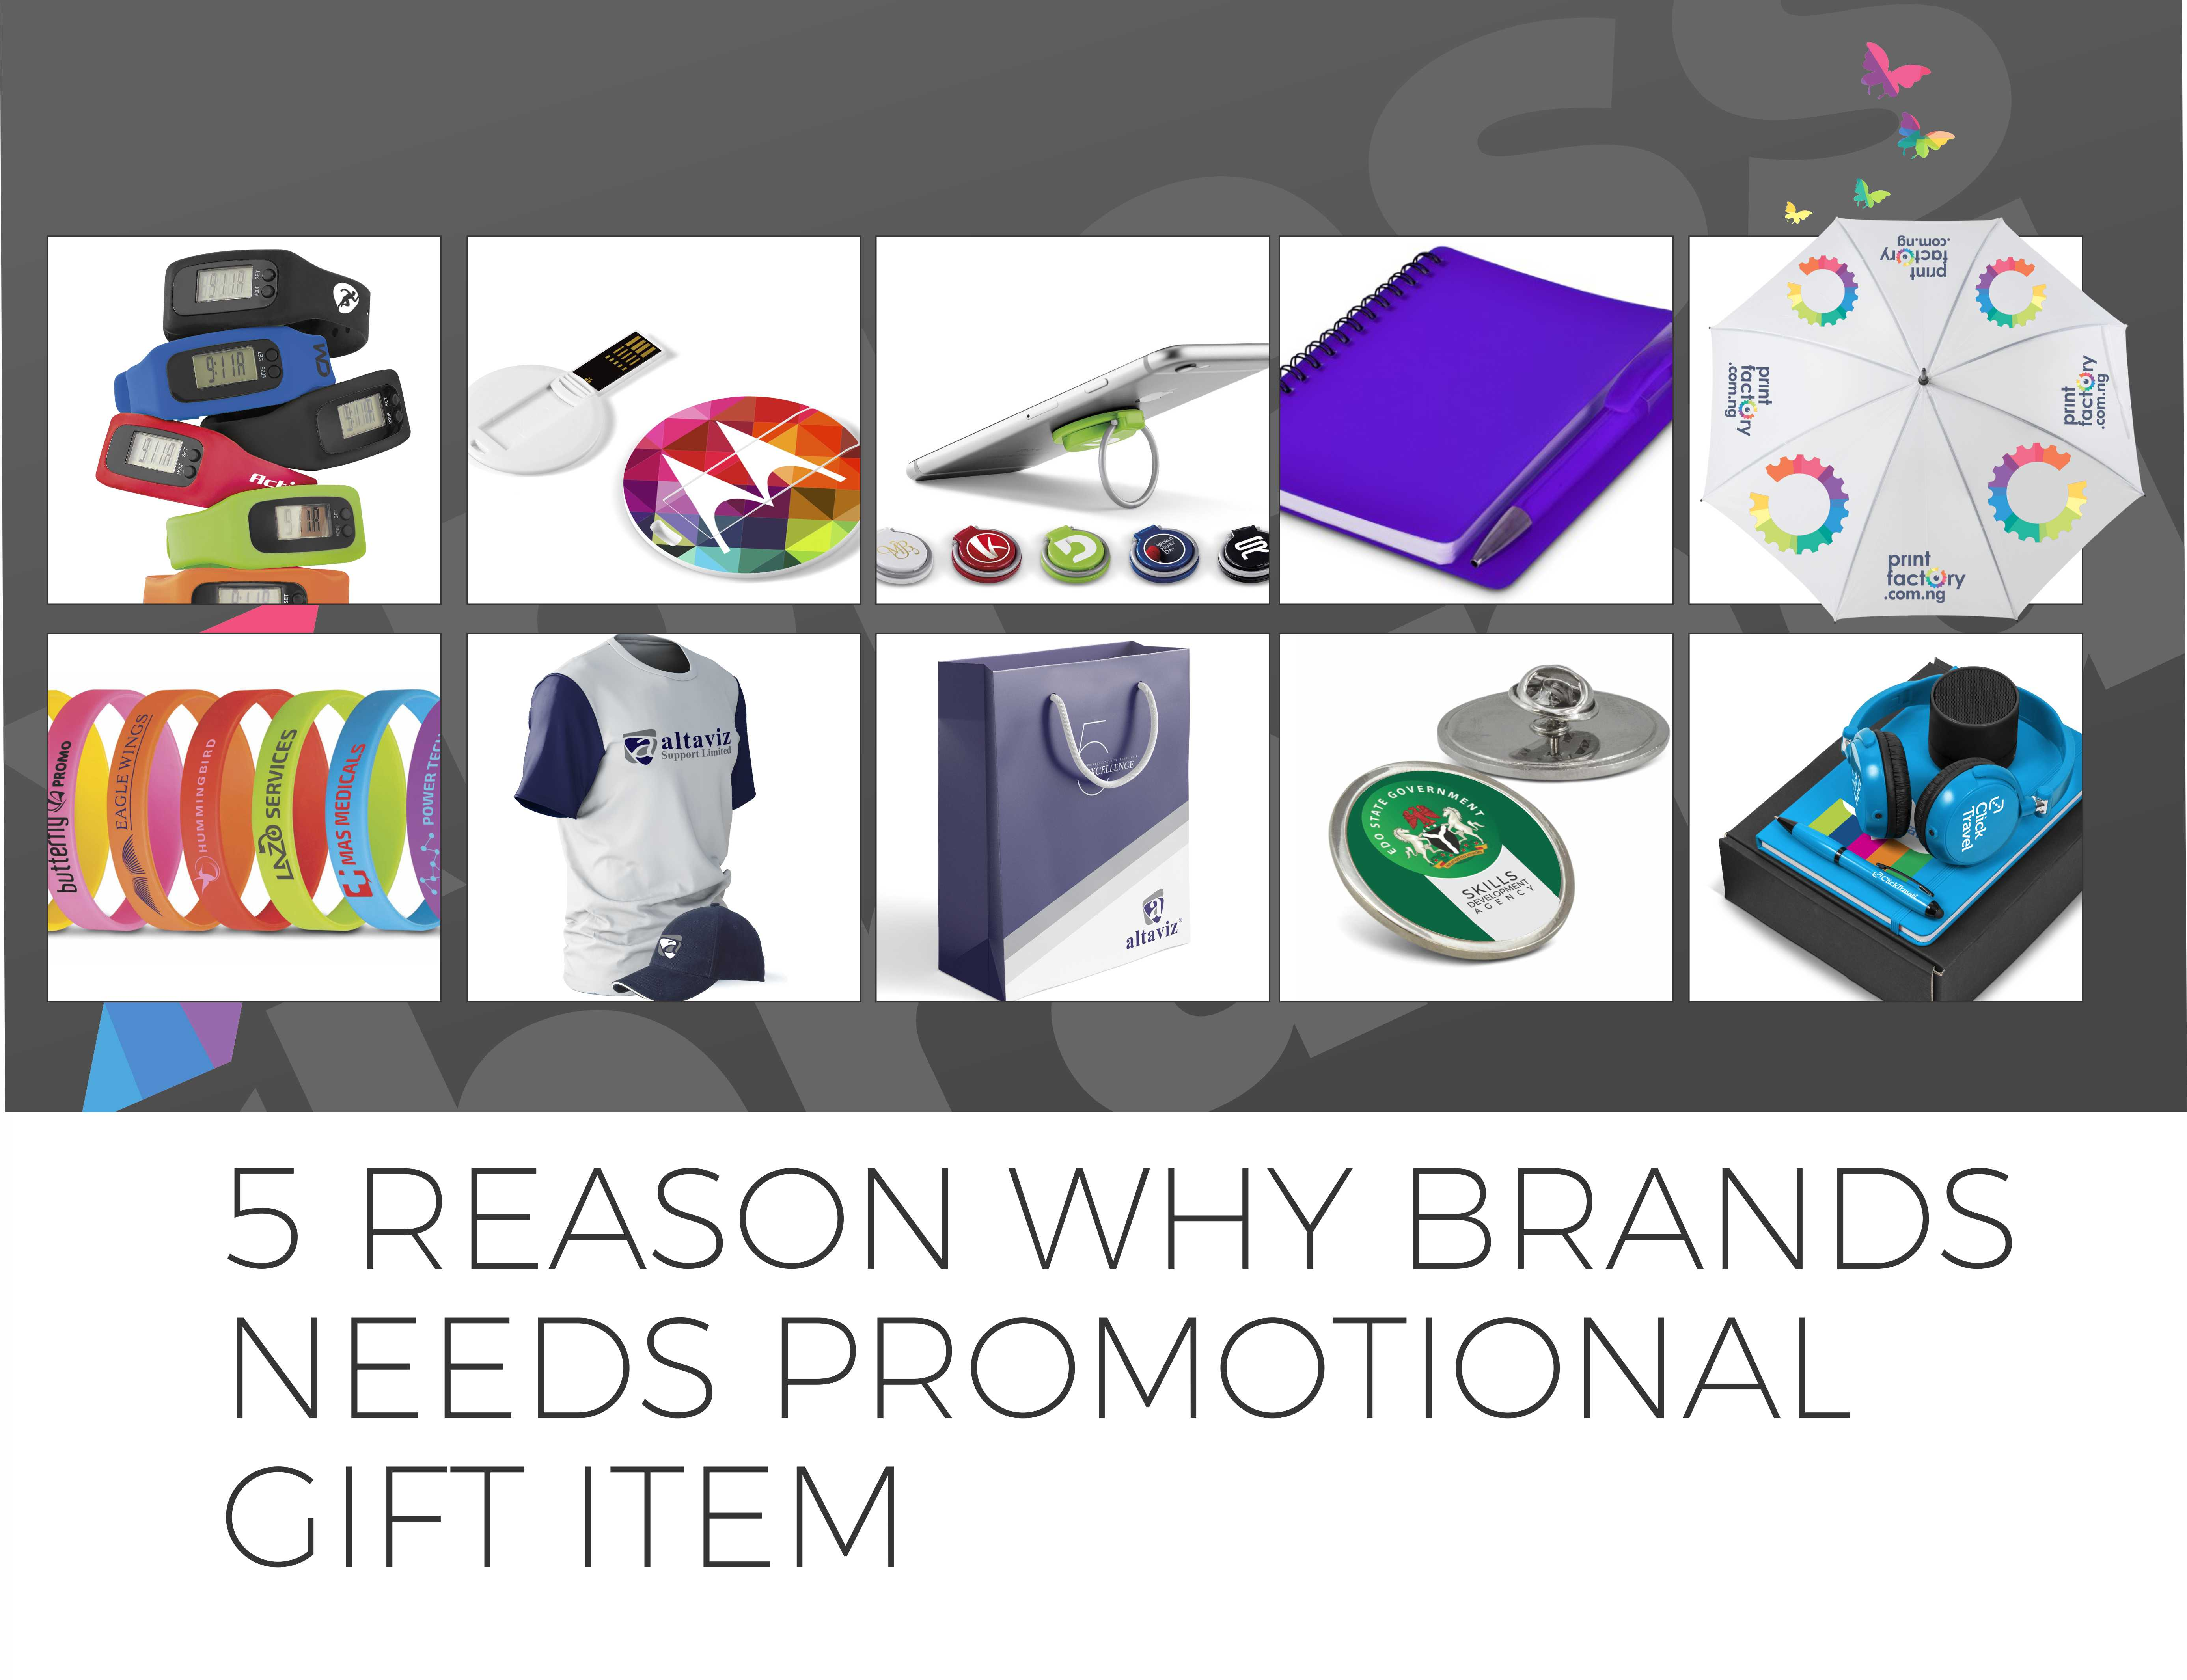 Branded gifts